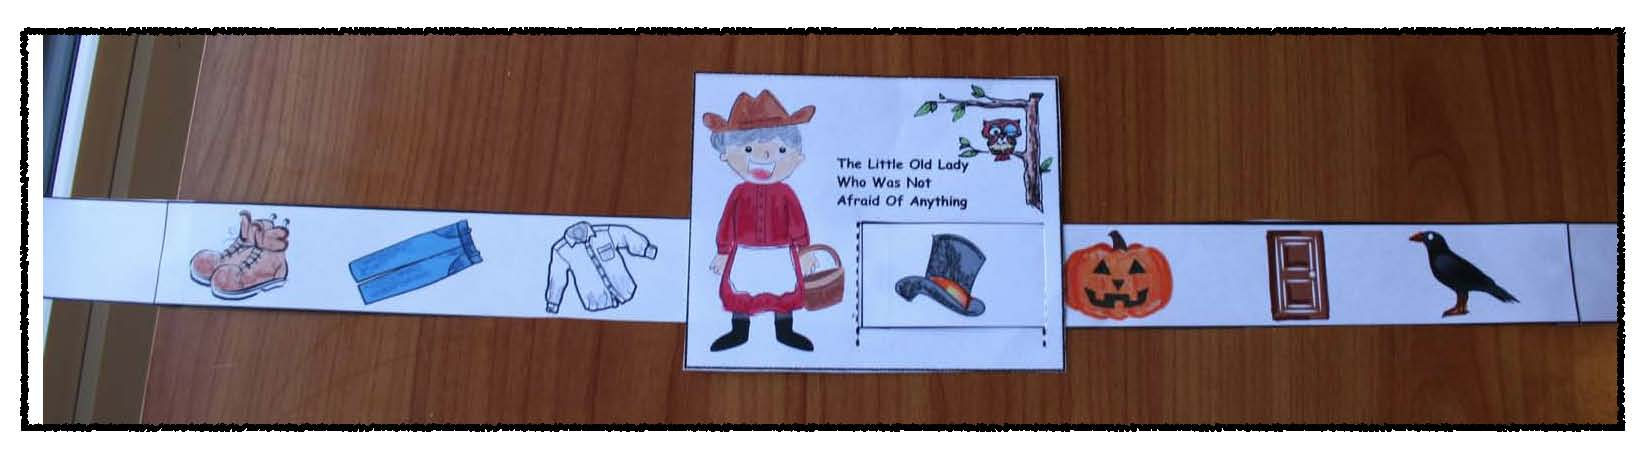 activities for The little old lady who wasnt afraid of anything, pumpkin crafts, pumpkin stories, scarecrow crafts, scarecrow stories, Halloween activities, Halloween stories, halloween crafts, storytelling sliders